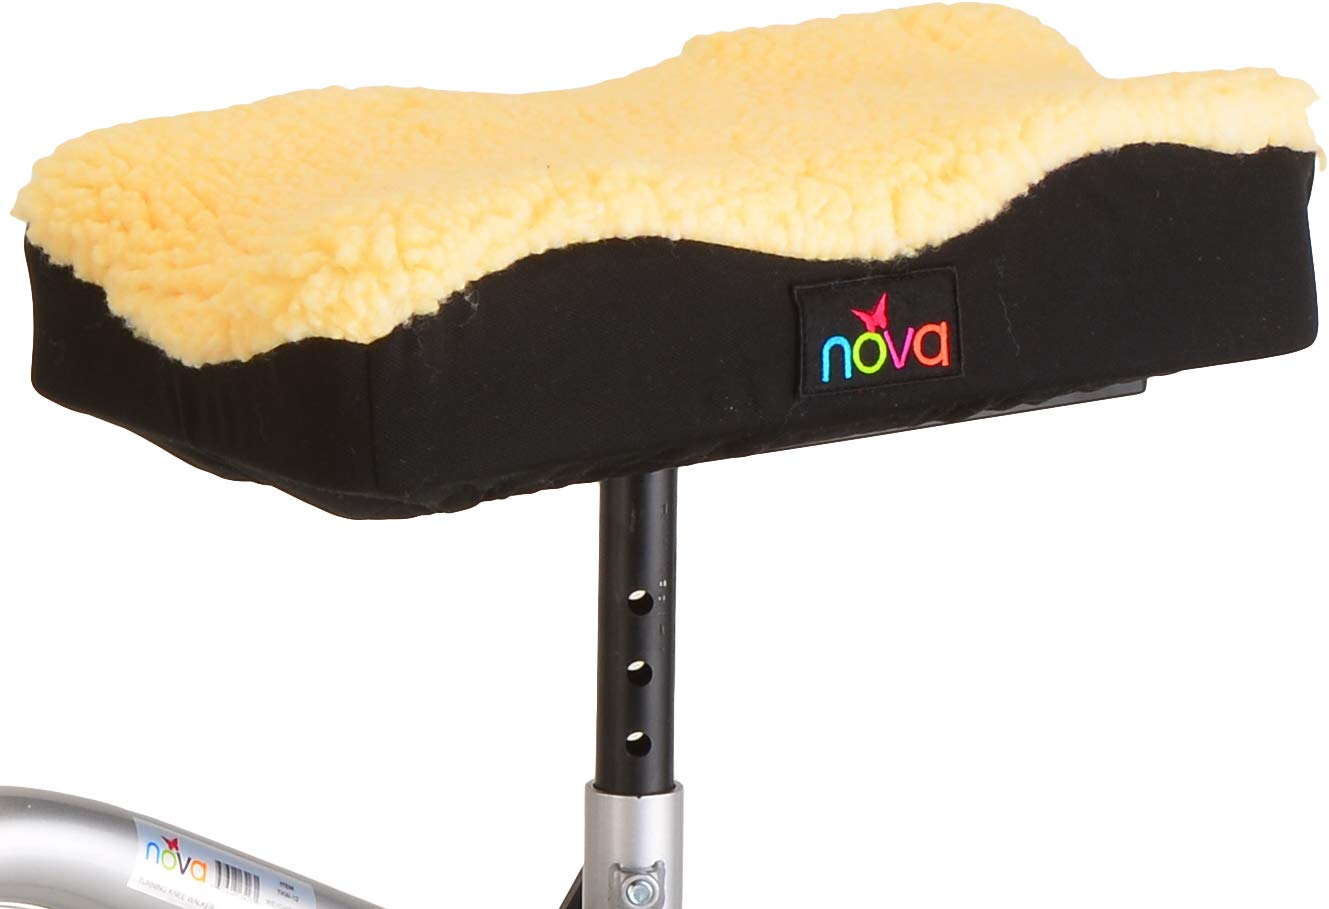 NOVA Medical Knee Walker Cushion Cover, Thick Padded Fleece Faux Sheepskin Top, Easy to Fit Most Knee Walkers & Knee Scooters, Washable by NOVA Medical Products